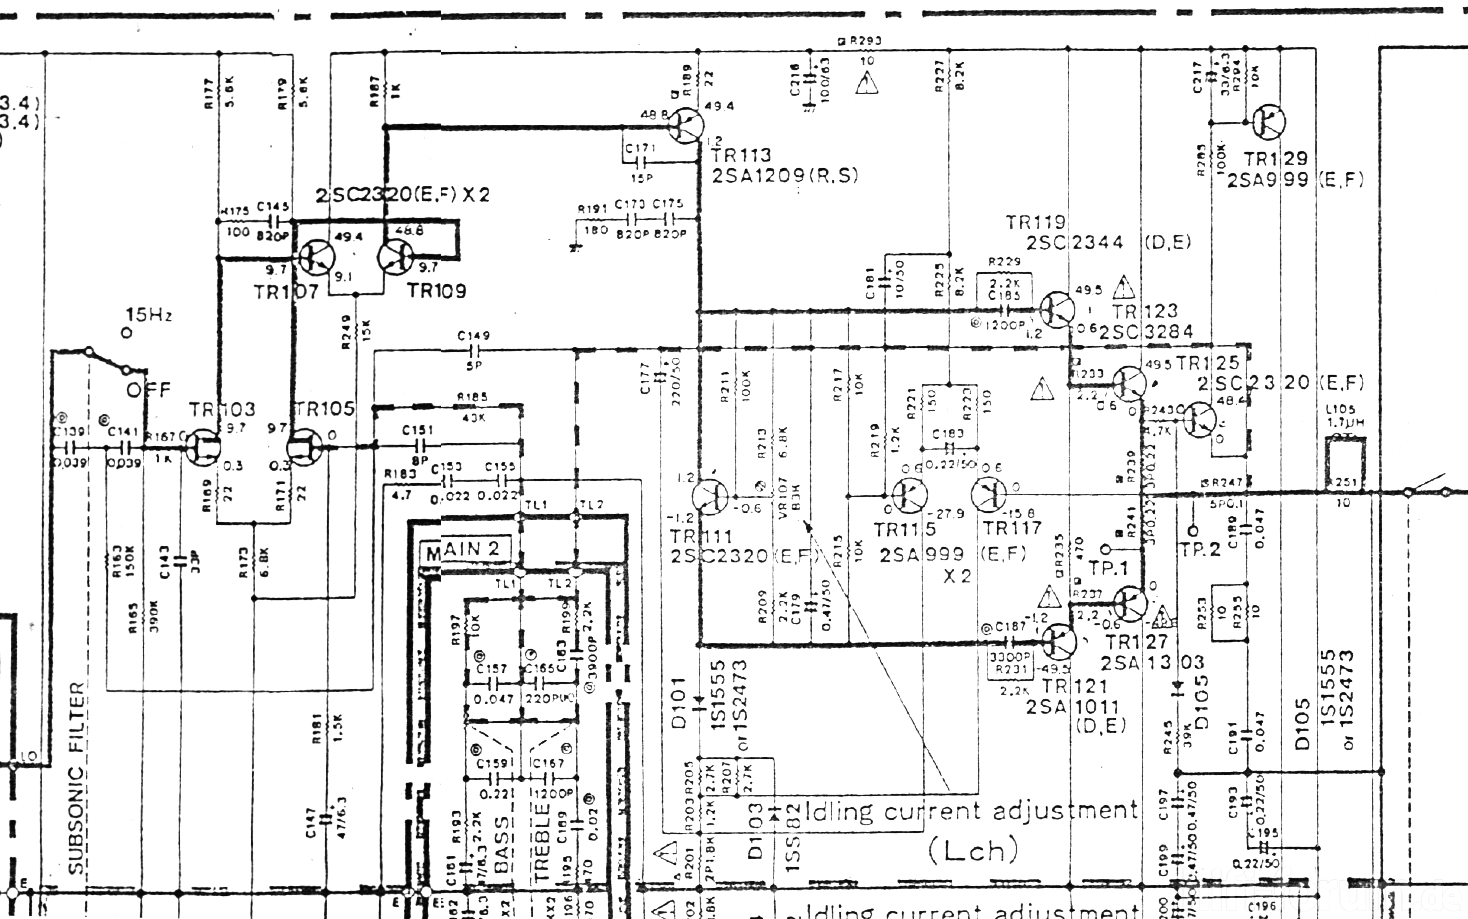 yamaha a 500 schematic detail power amplifier stage left channel_198474 2007 ford five hundred car stereo wiring diagram radiobuzz48 2007 ford focus stereo wiring diagram at alyssarenee.co